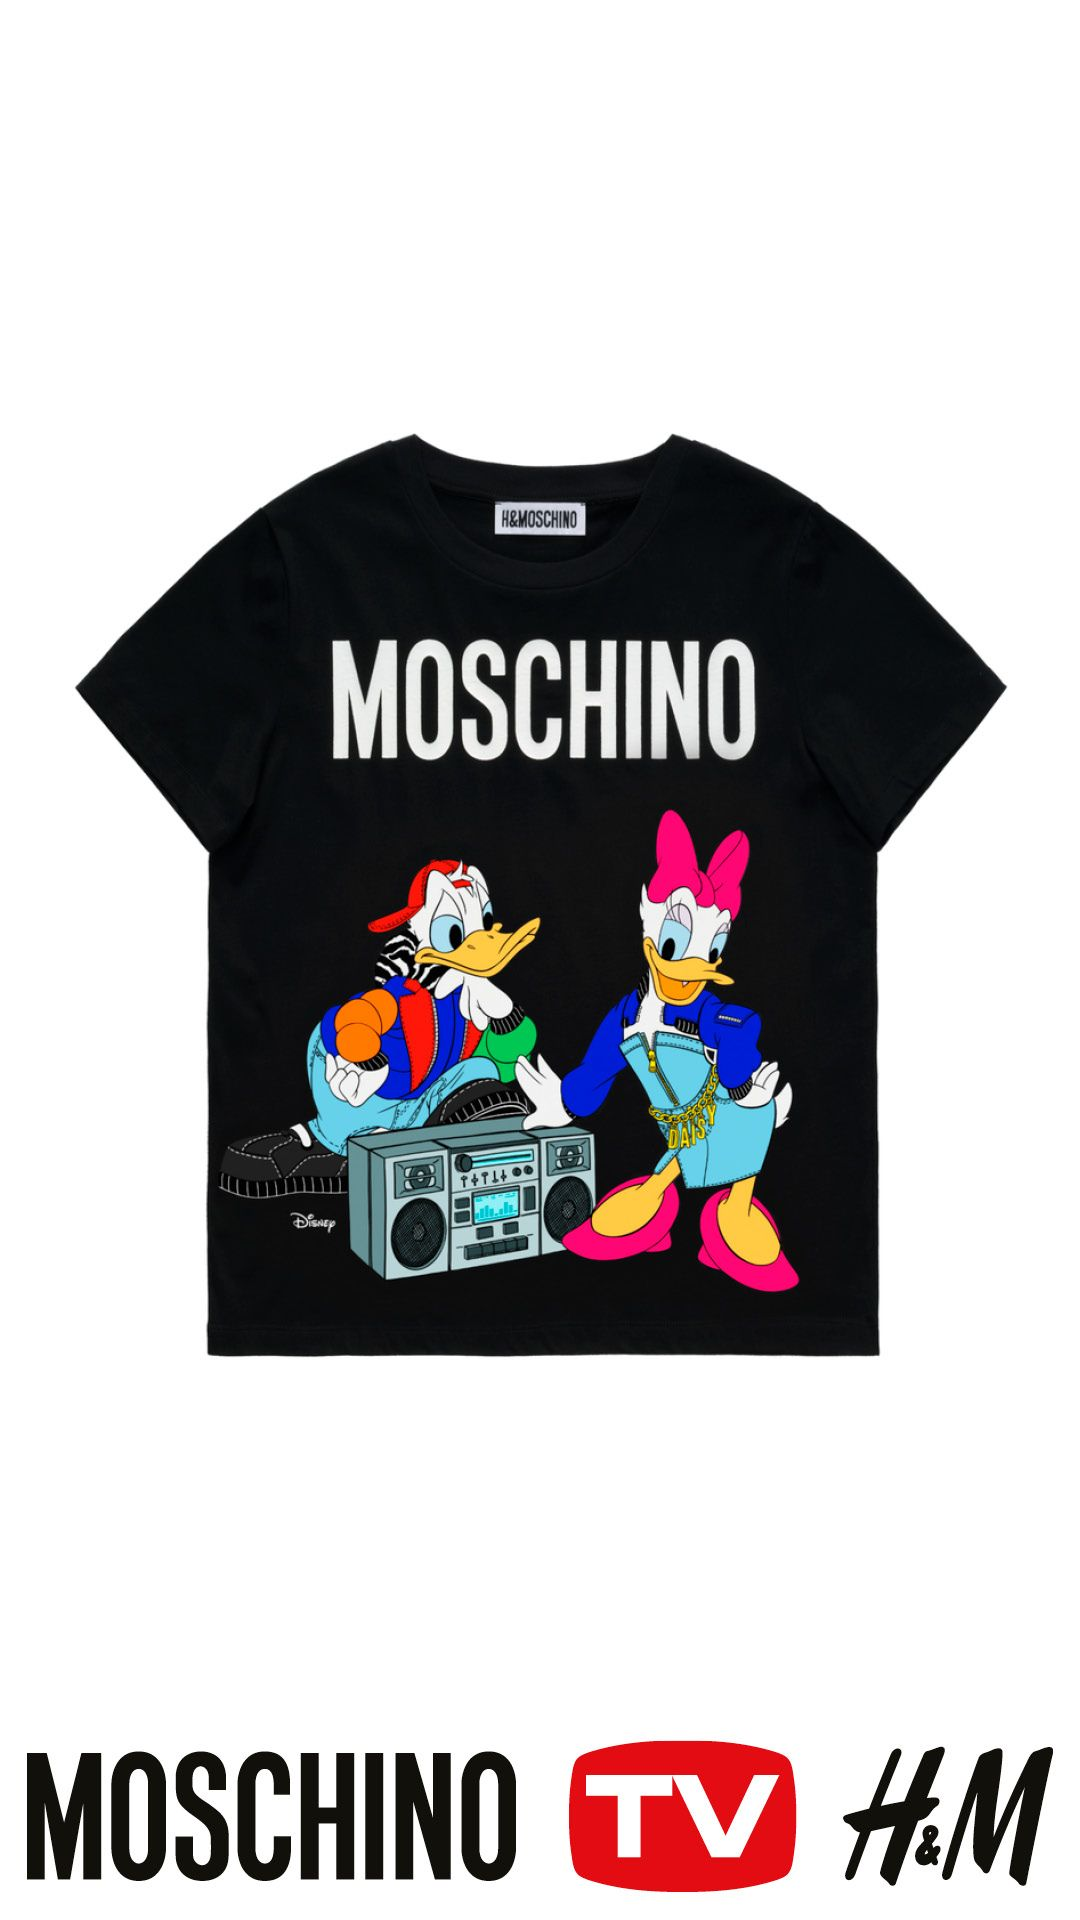 09030d3ad MOSCHINO [tv] H&M features bold streetwear-inspired clothing and ...